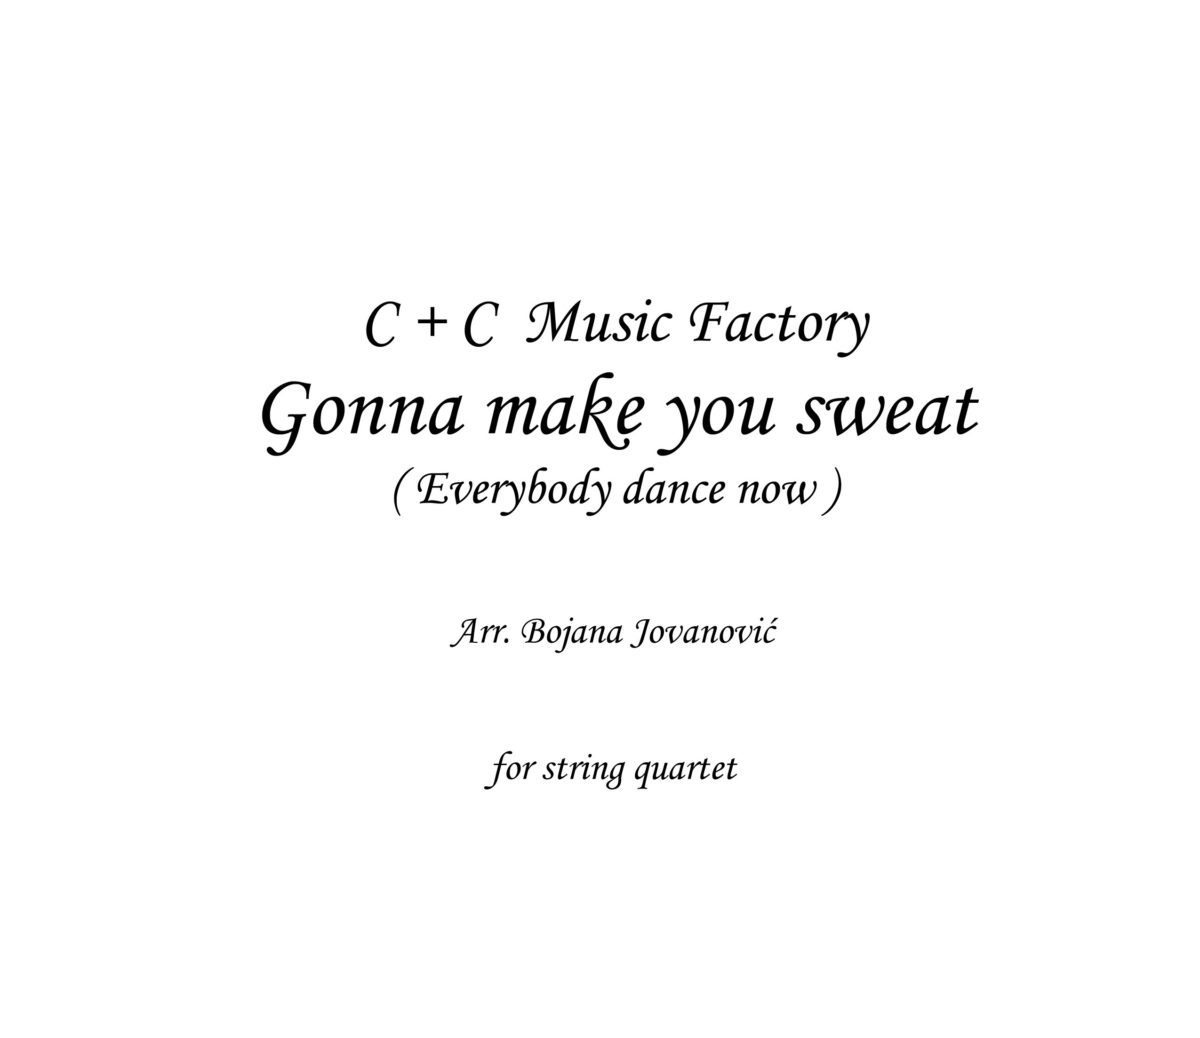 Gonna make you sweat (C+C Music Factory) - Sheet Music